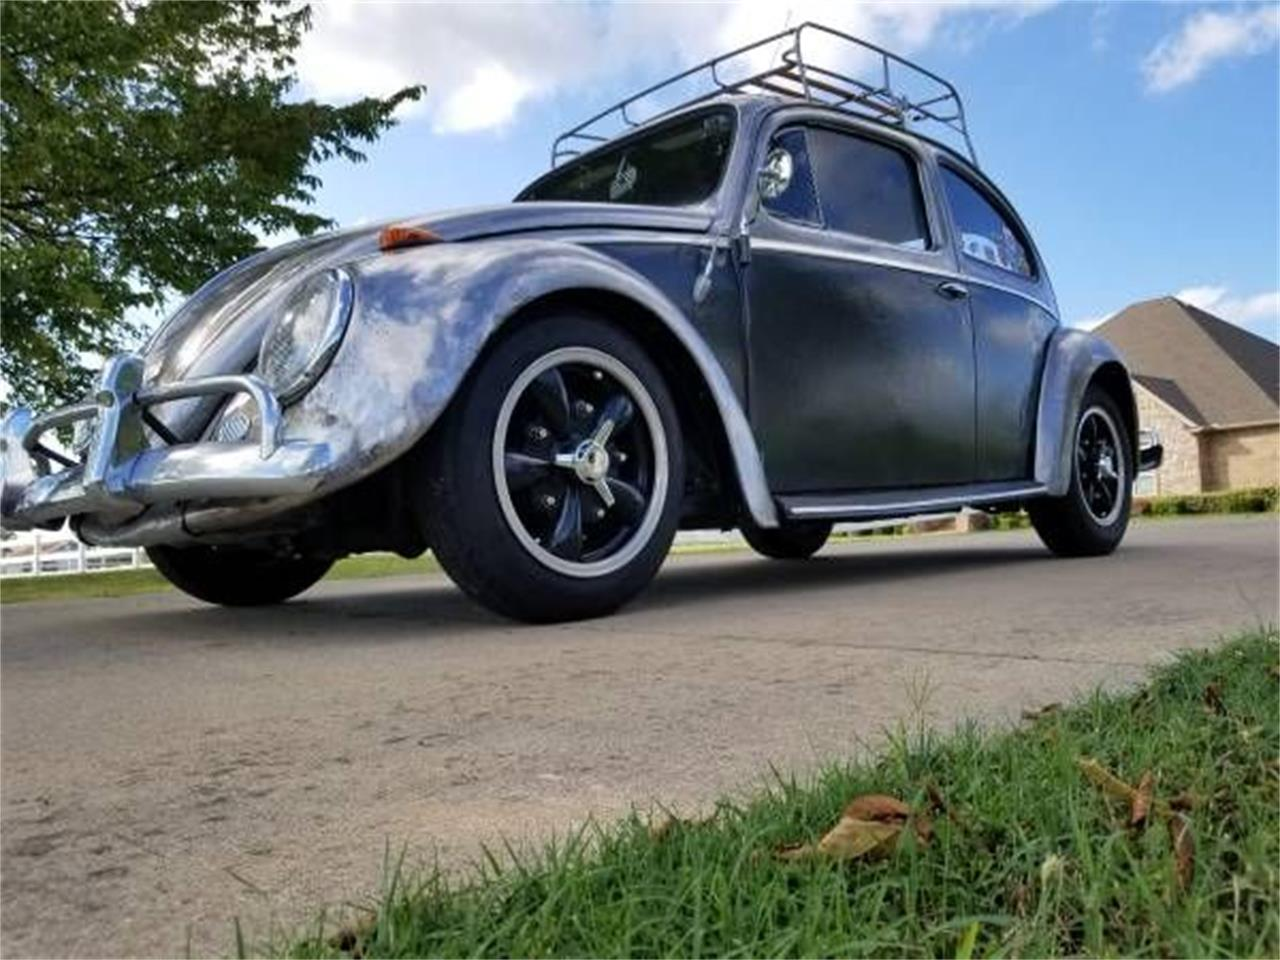 for sale 1959 volkswagen beetle in cadillac, michigan cars - cadillac, mi at geebo